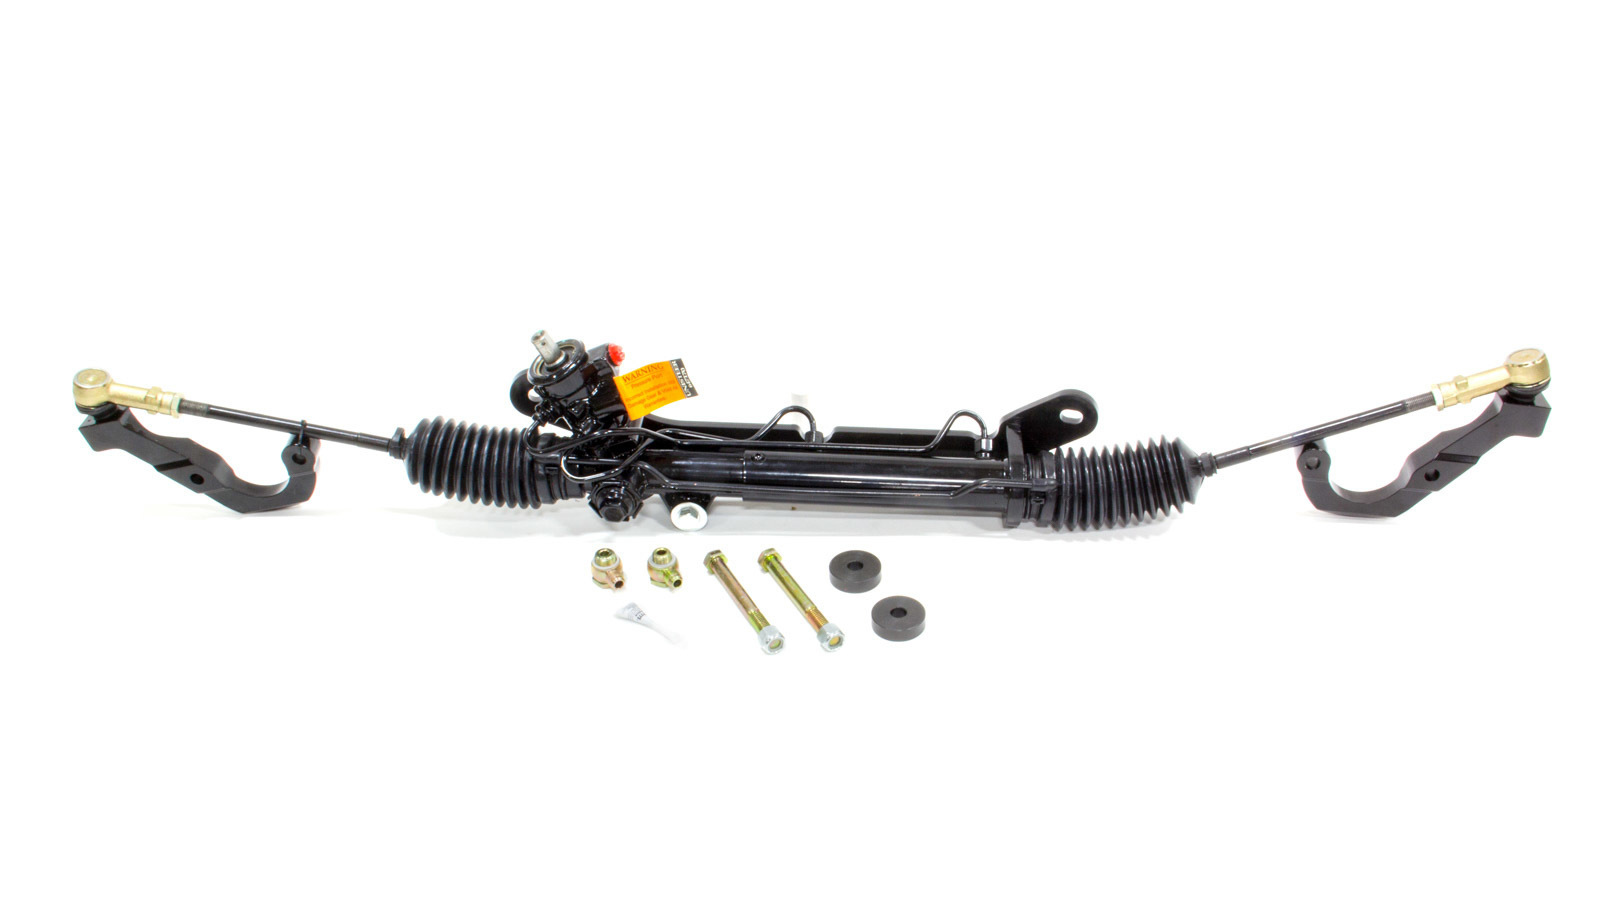 Unisteer Performance Products 8010540-01 Rack and Pinion, Power, Aluminum, Black Powder Coat, Chevy Camaro 1967-69, Kit